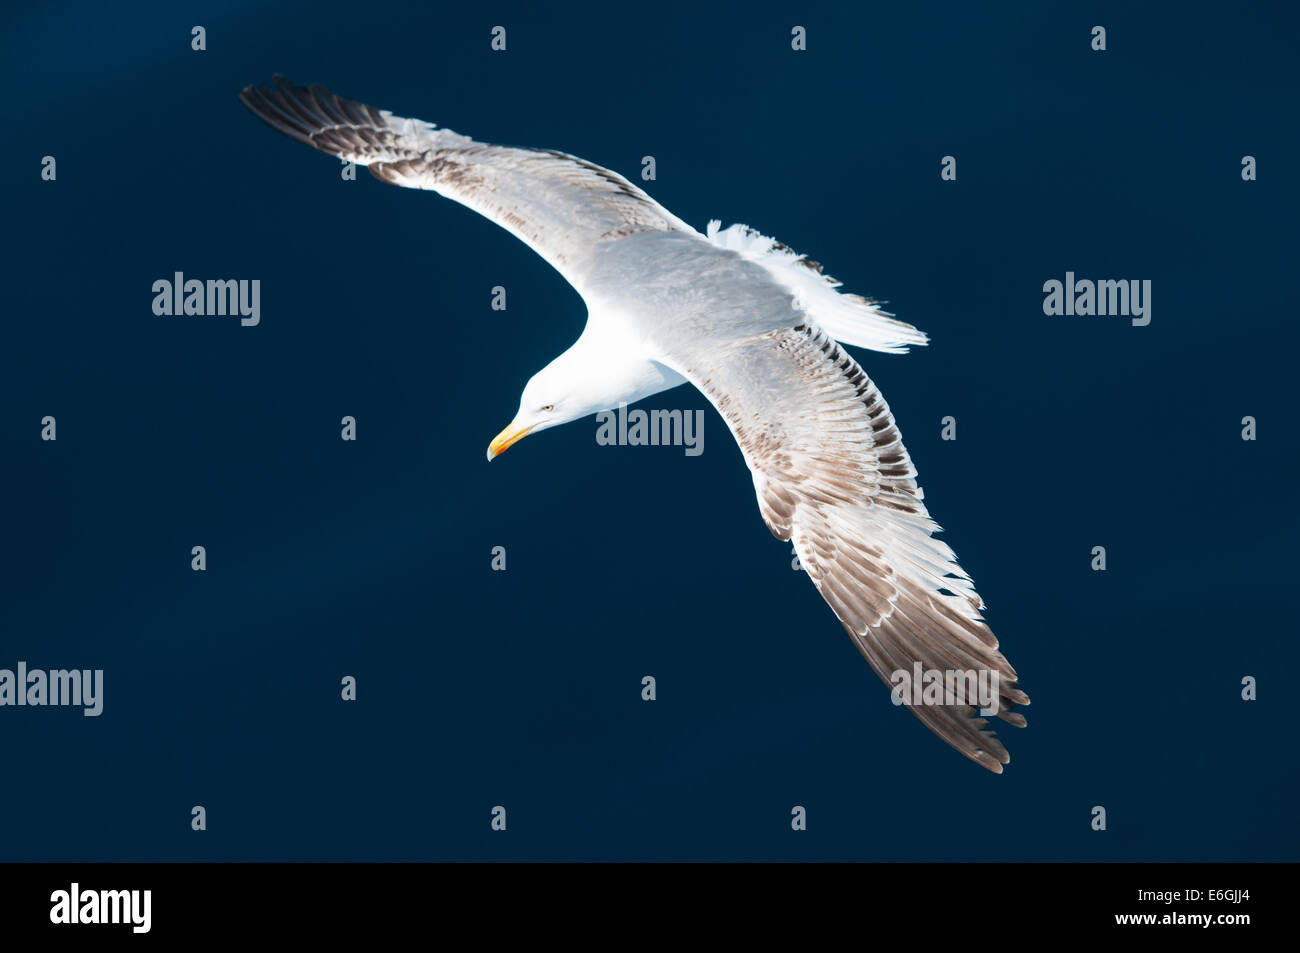 Seagull flying above the sea - Stock Image